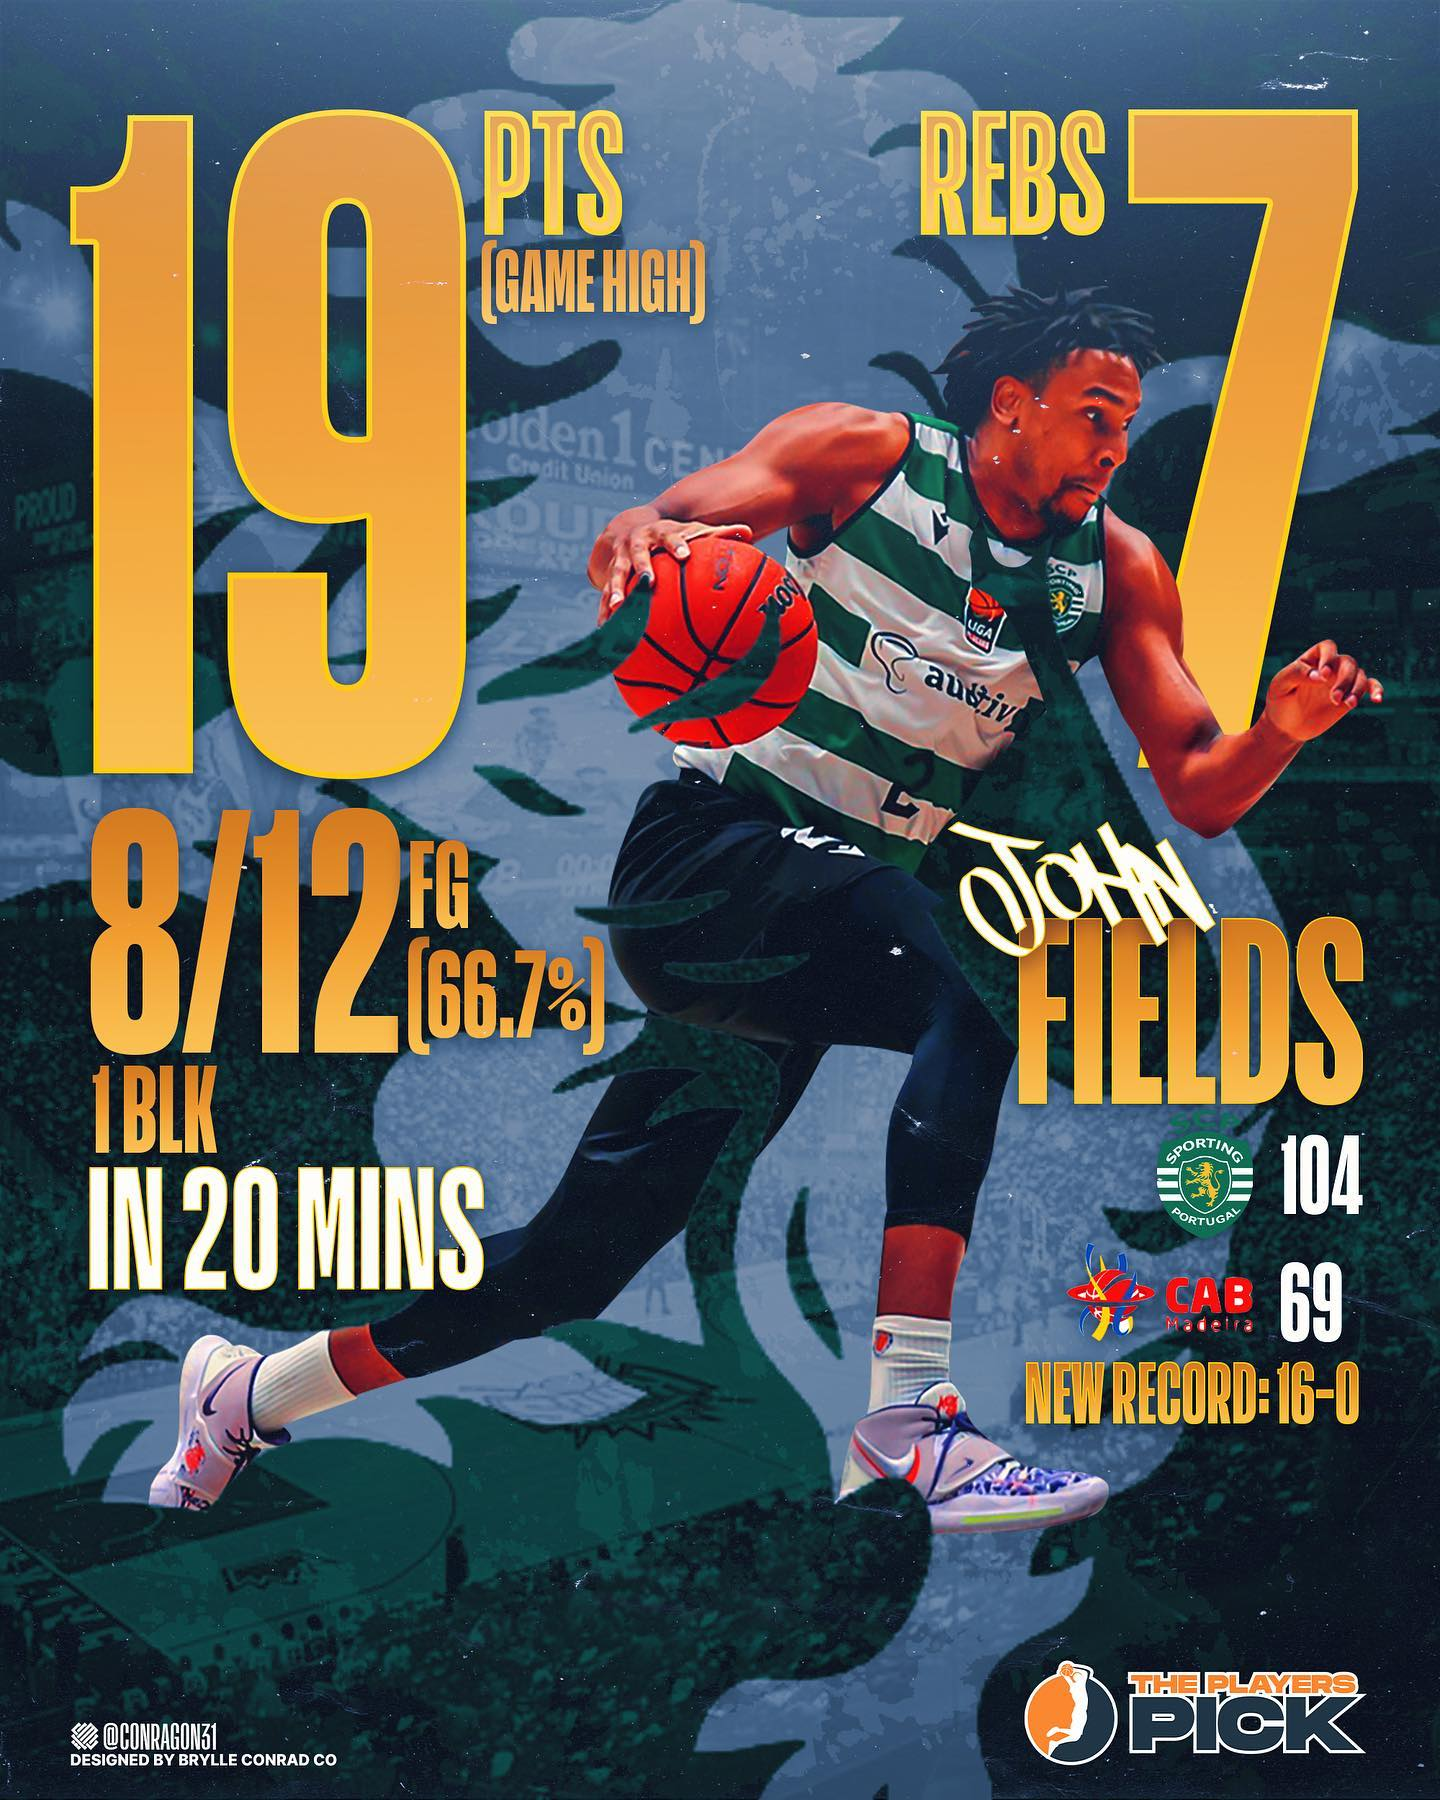 19 points & 7 rebounds in 20 minutes for MVP Fields in Portugal! 72.0% FG this season!